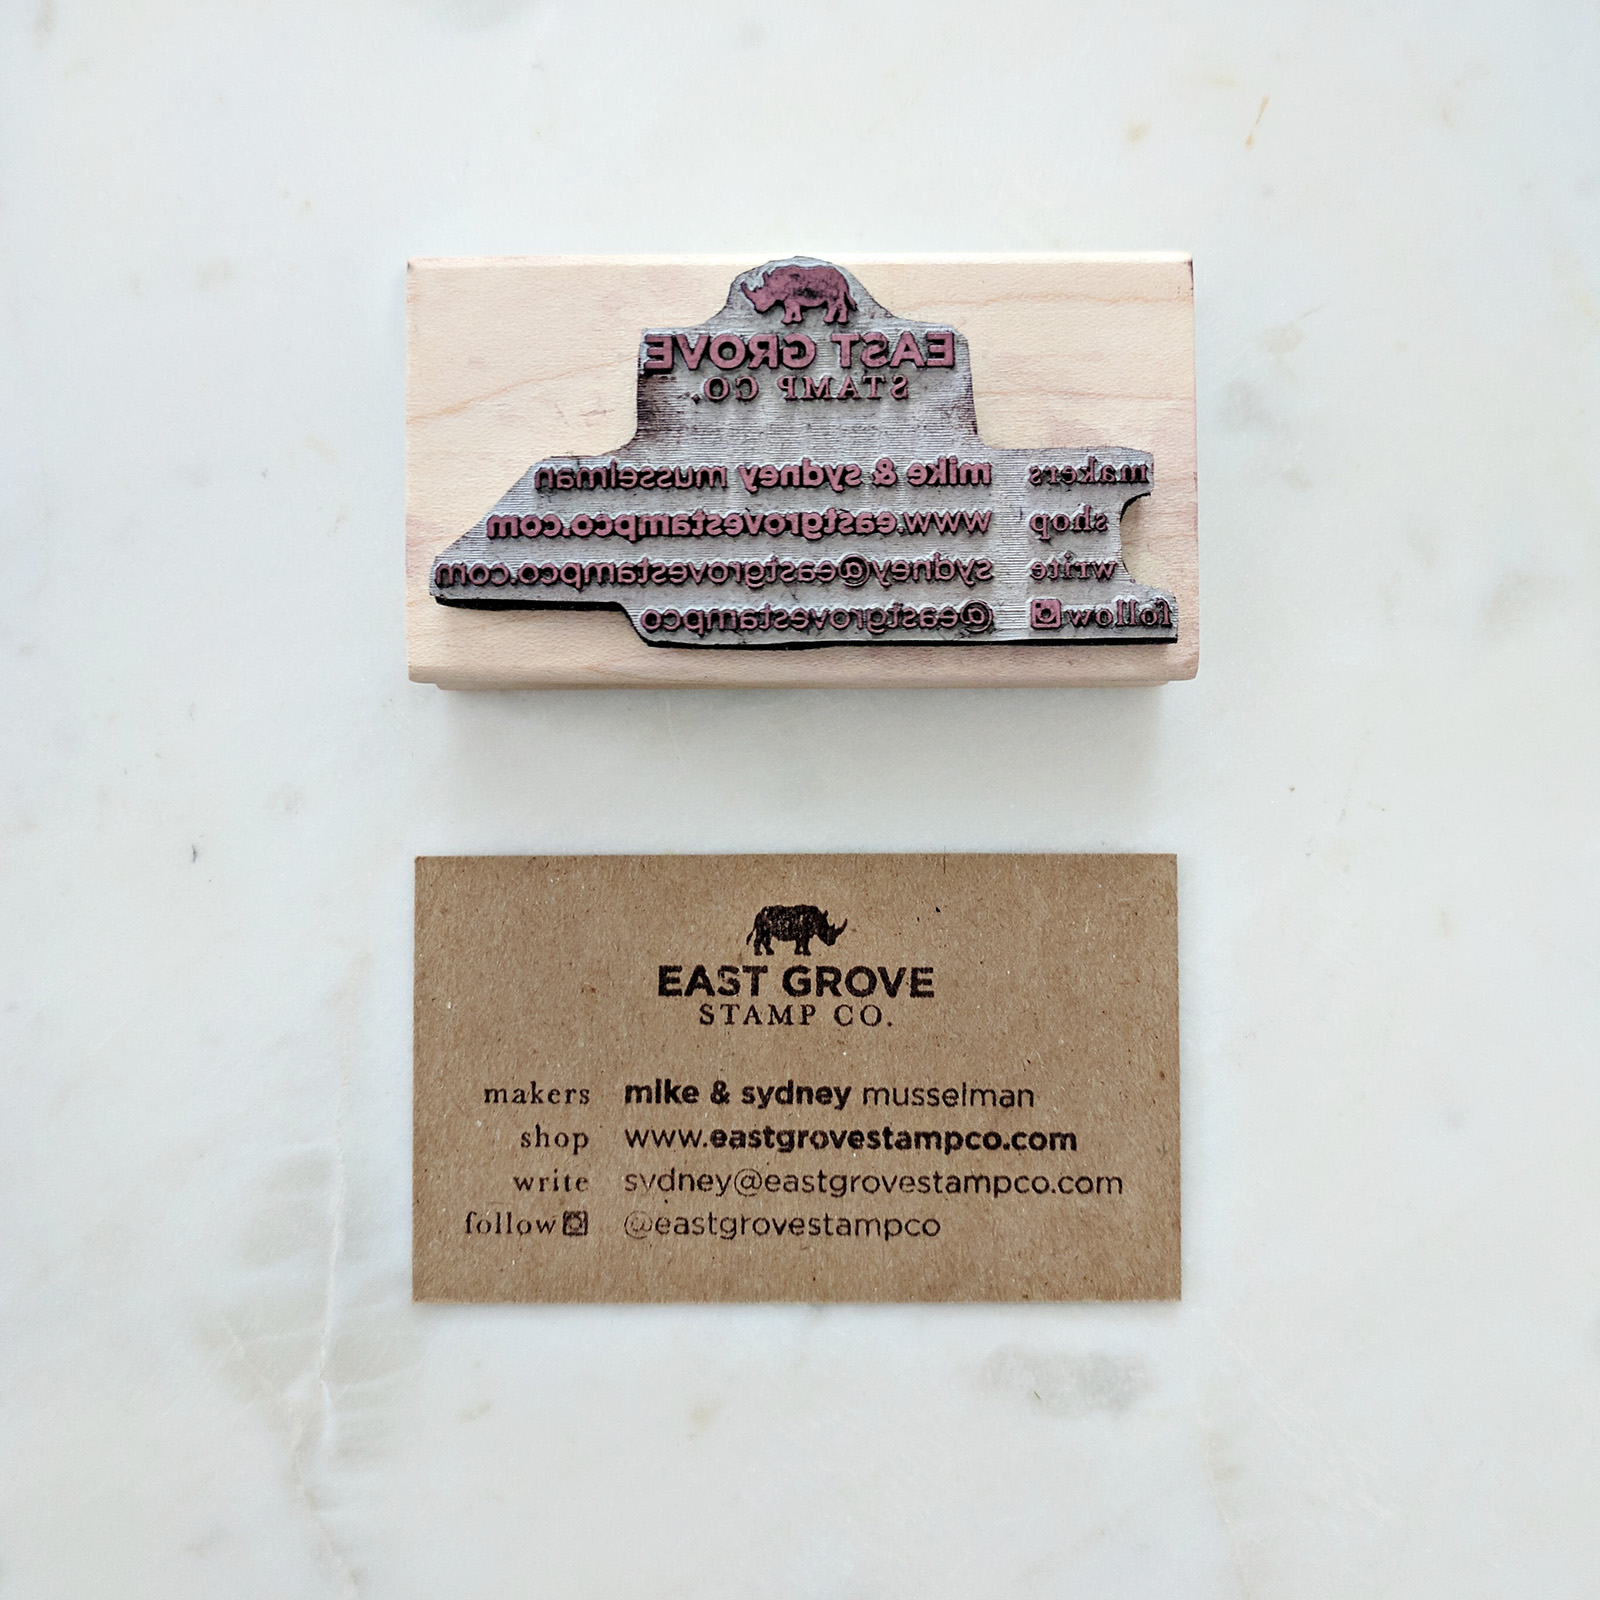 Business Cards - A stamp of your business card is incredibly handy for always having cards on-hand. We cut up extra card stock and chipboard to stamp our business card design onto.